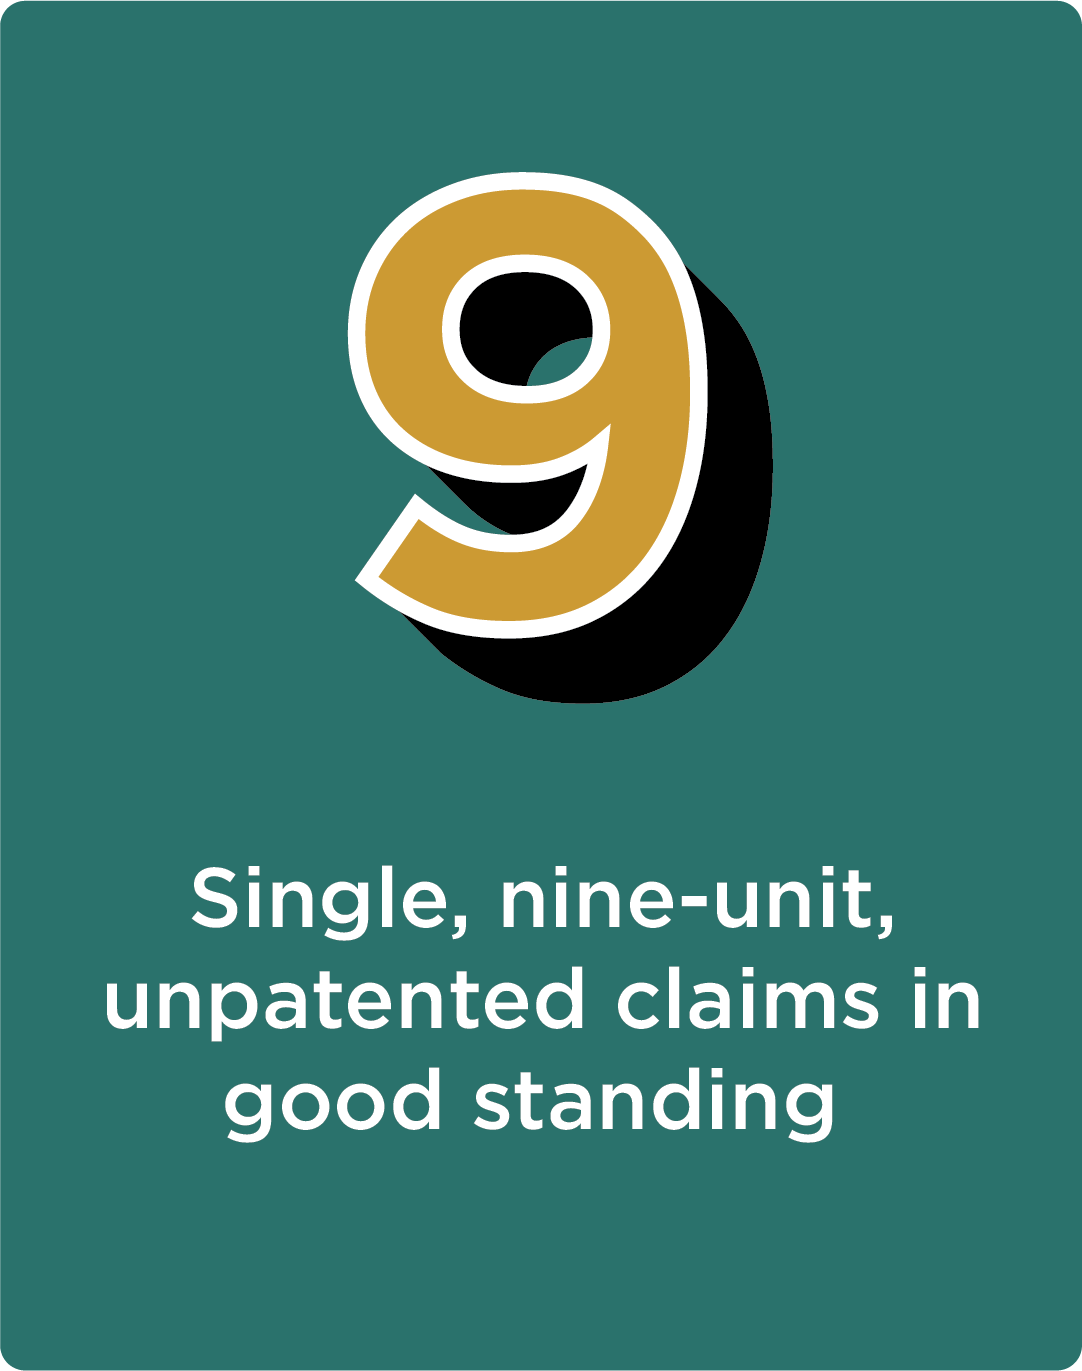 9 Claims_Icon.png